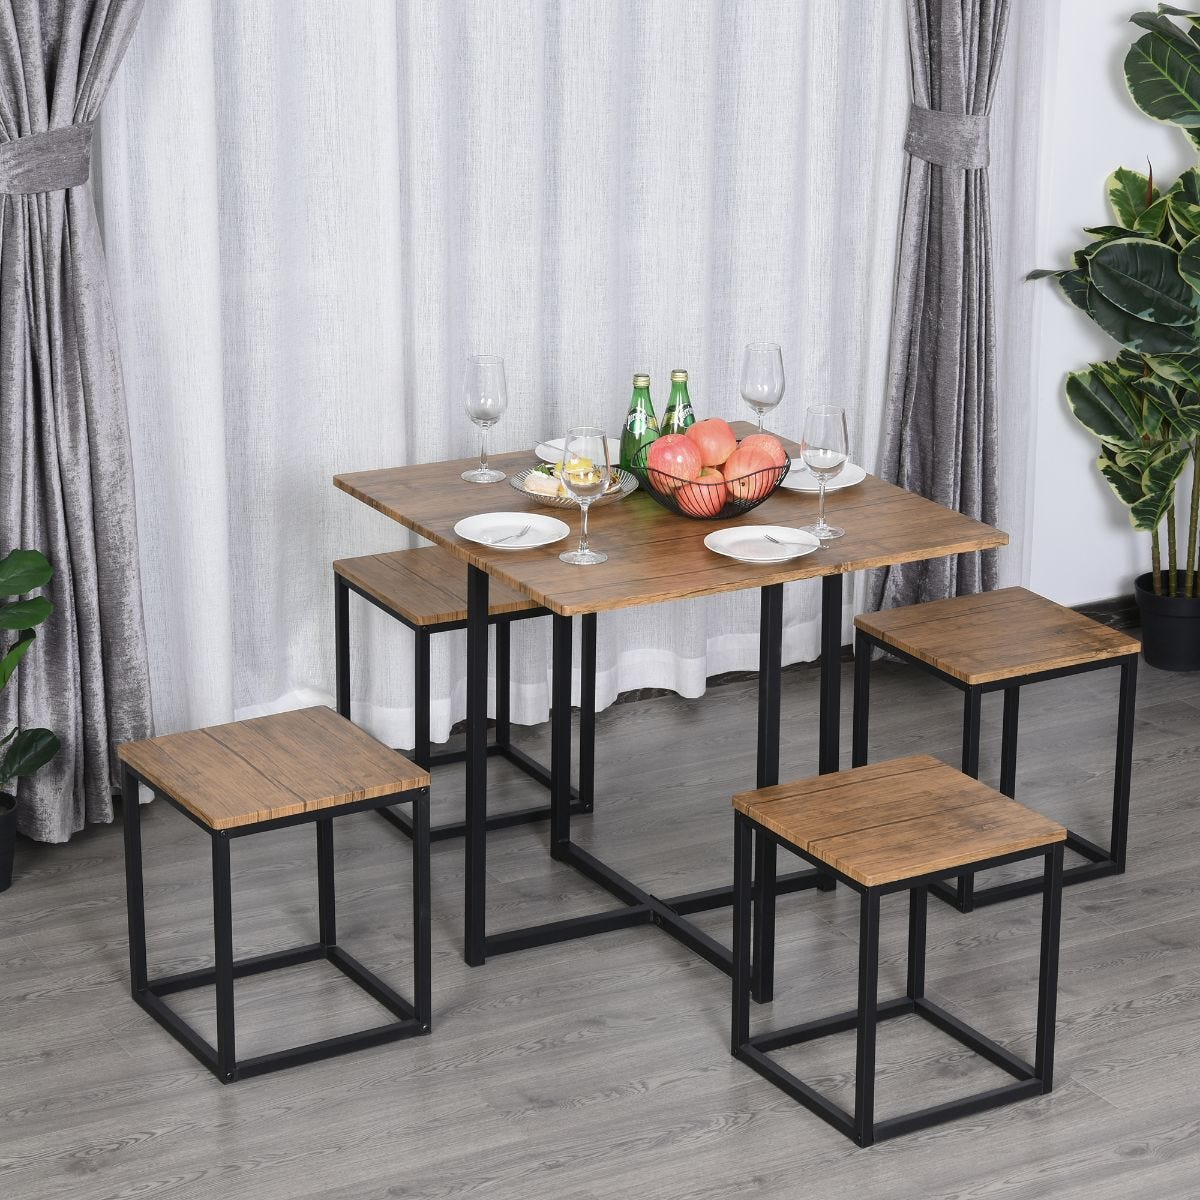 5 Pieces Industrial Boxy Bar Style Dining Table And Stool Set Metal Frame